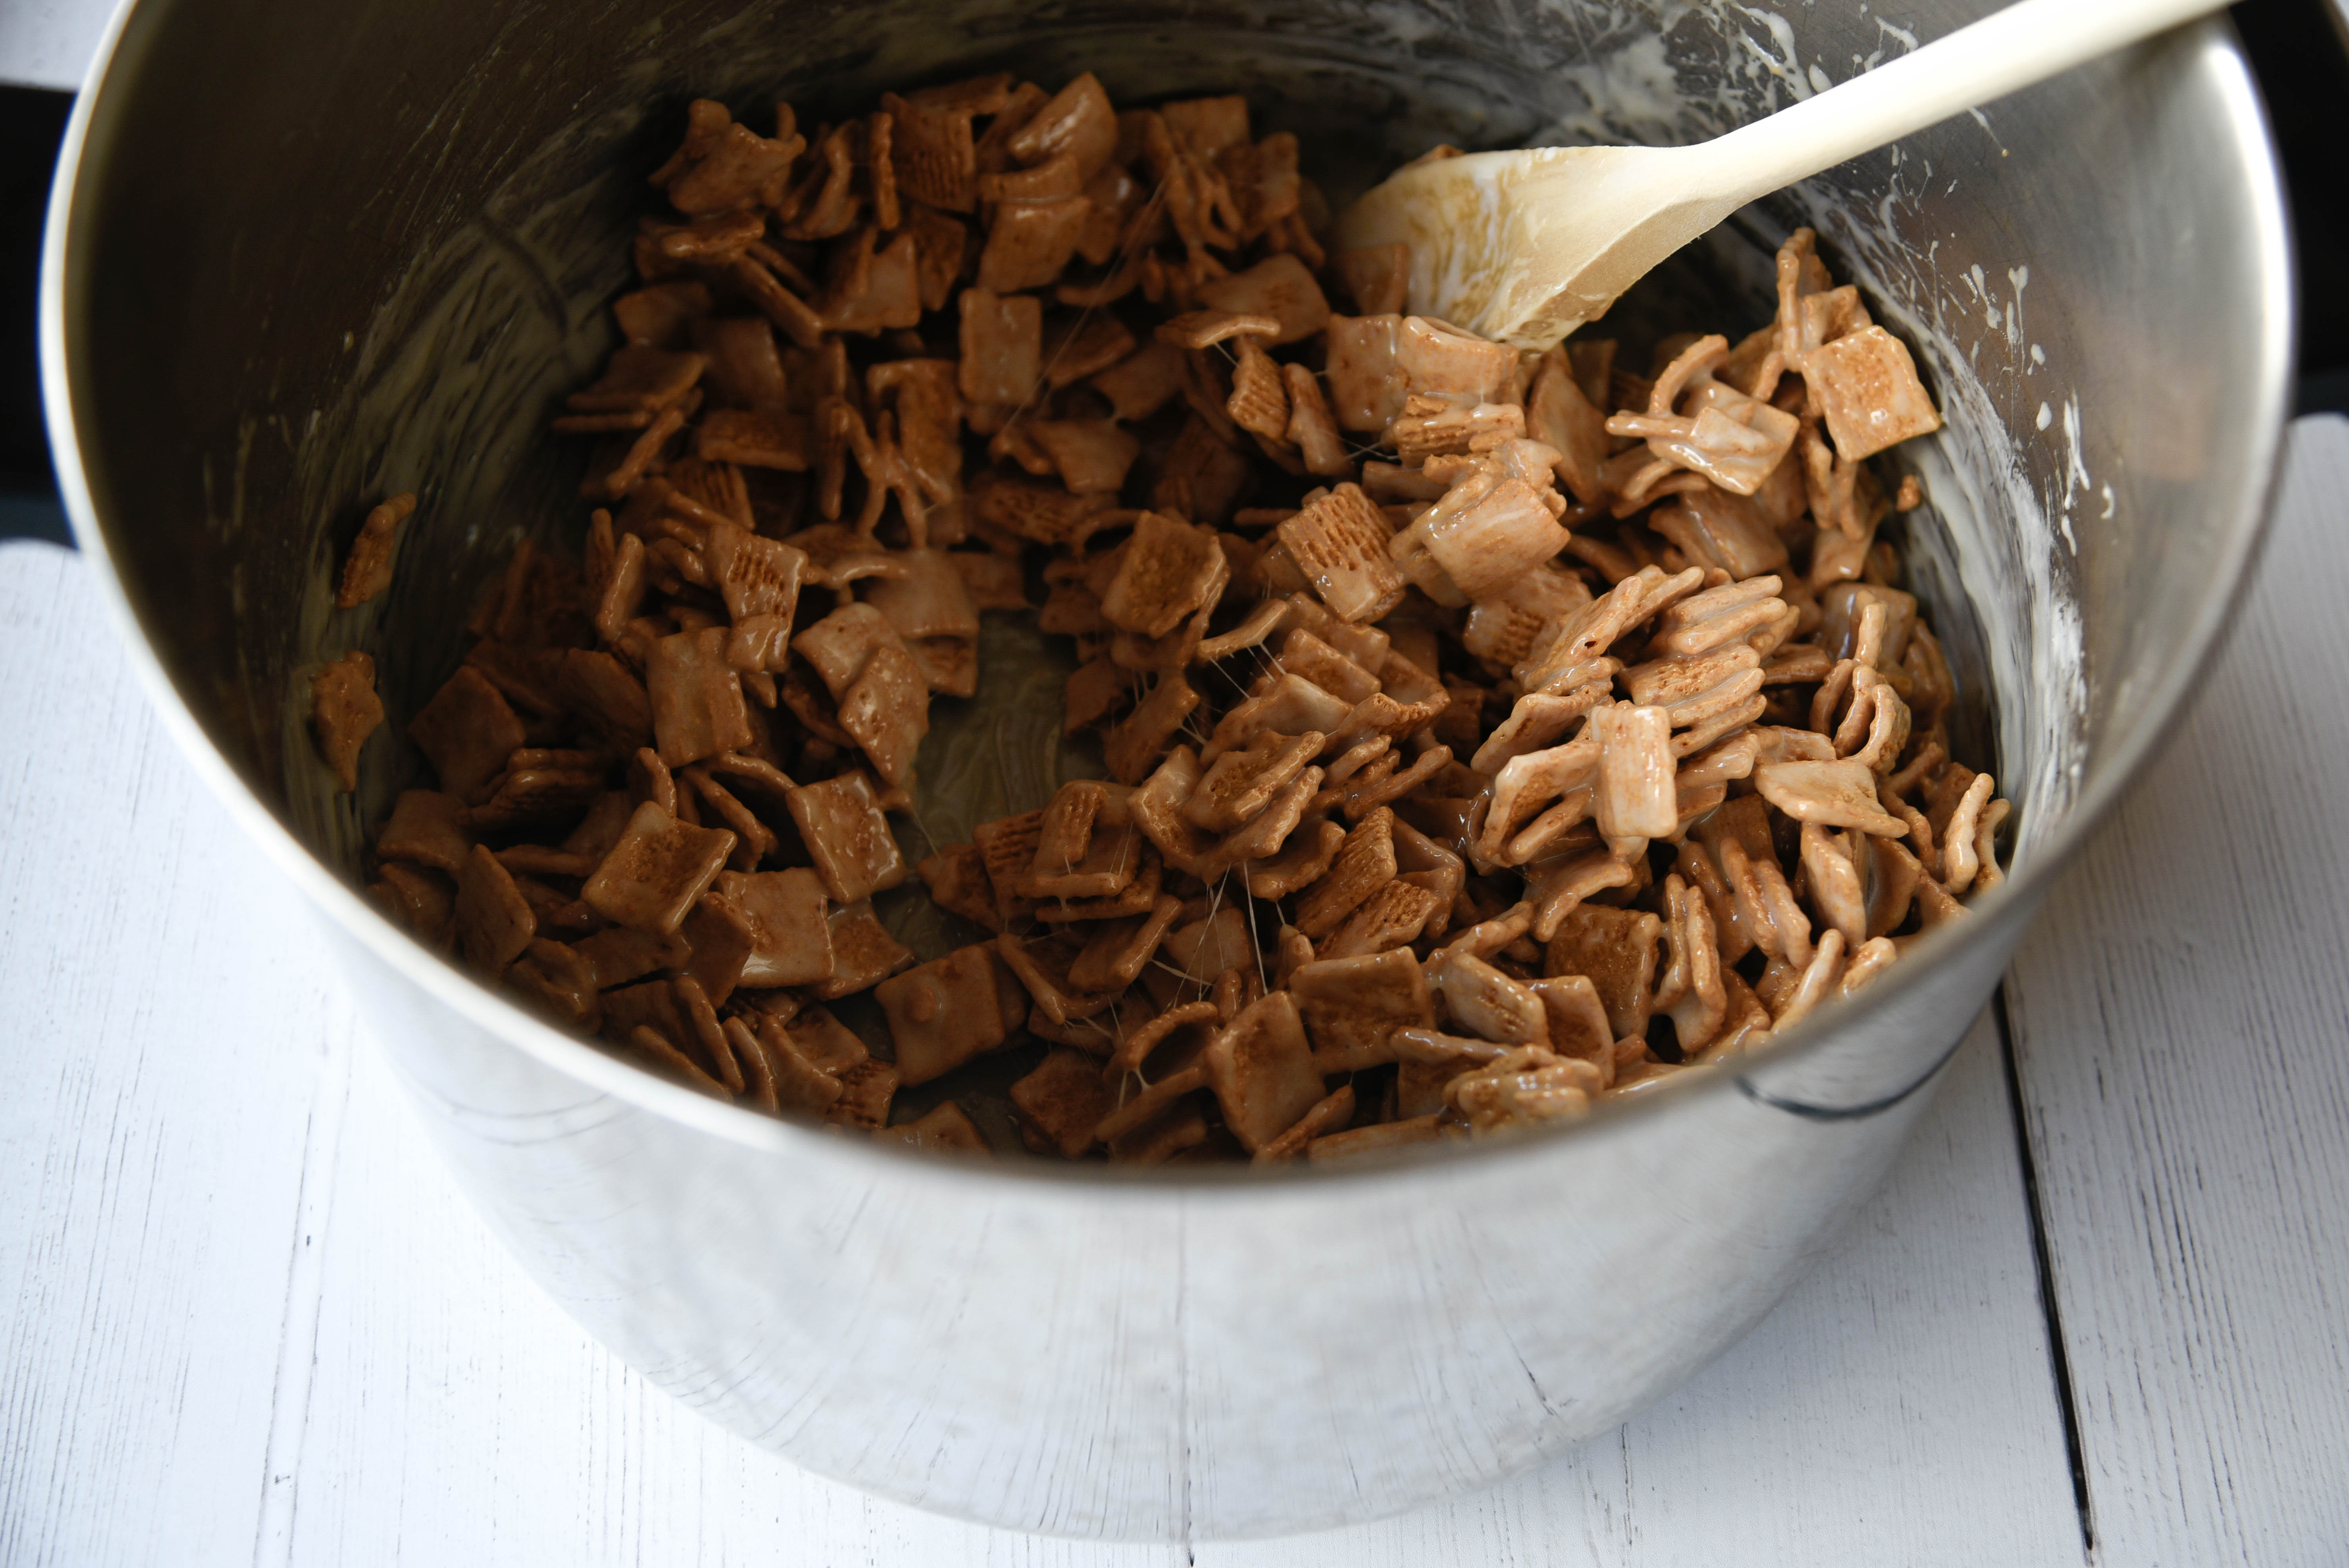 Cereal stirred into a pot with a wooden spoon